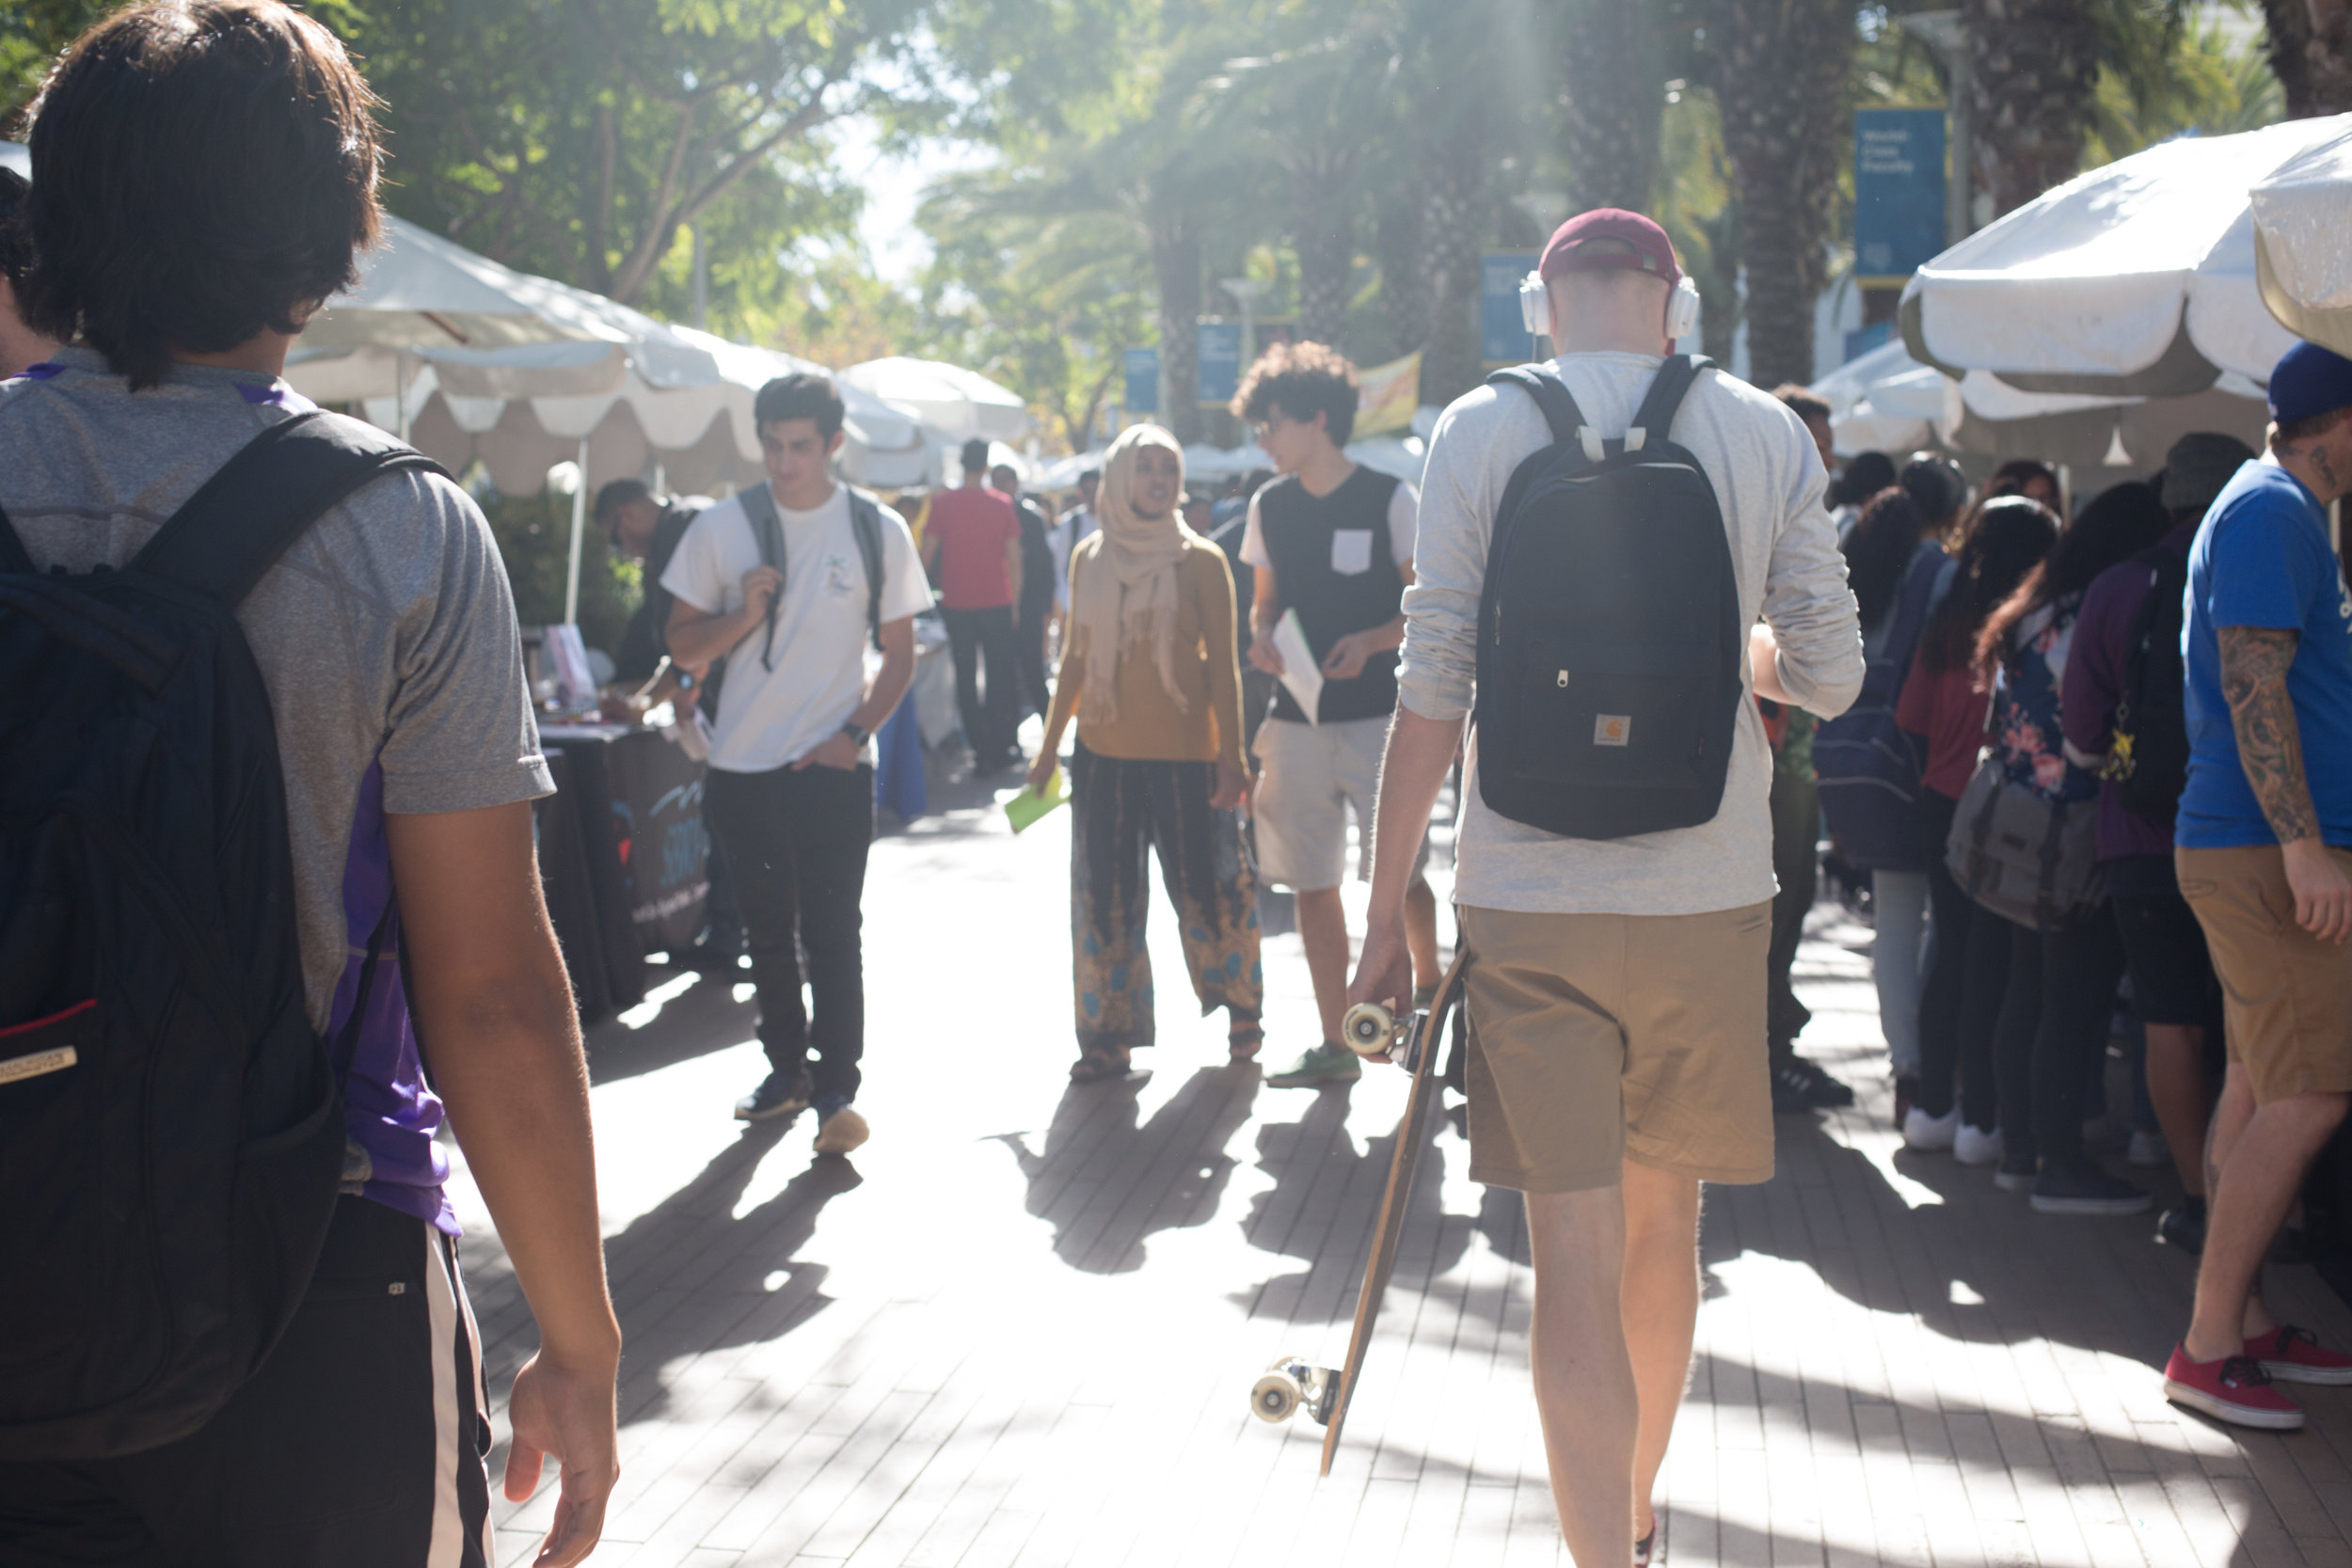 Students approach booths to inquire about emplyment opportunities at the Job Fair held at the Main Quad of Santa Monica College's Main Campus in Santa Monica, Calif., October 24, 2017. (Photo By: Ripsime Avetisyan/Corsair Staff)